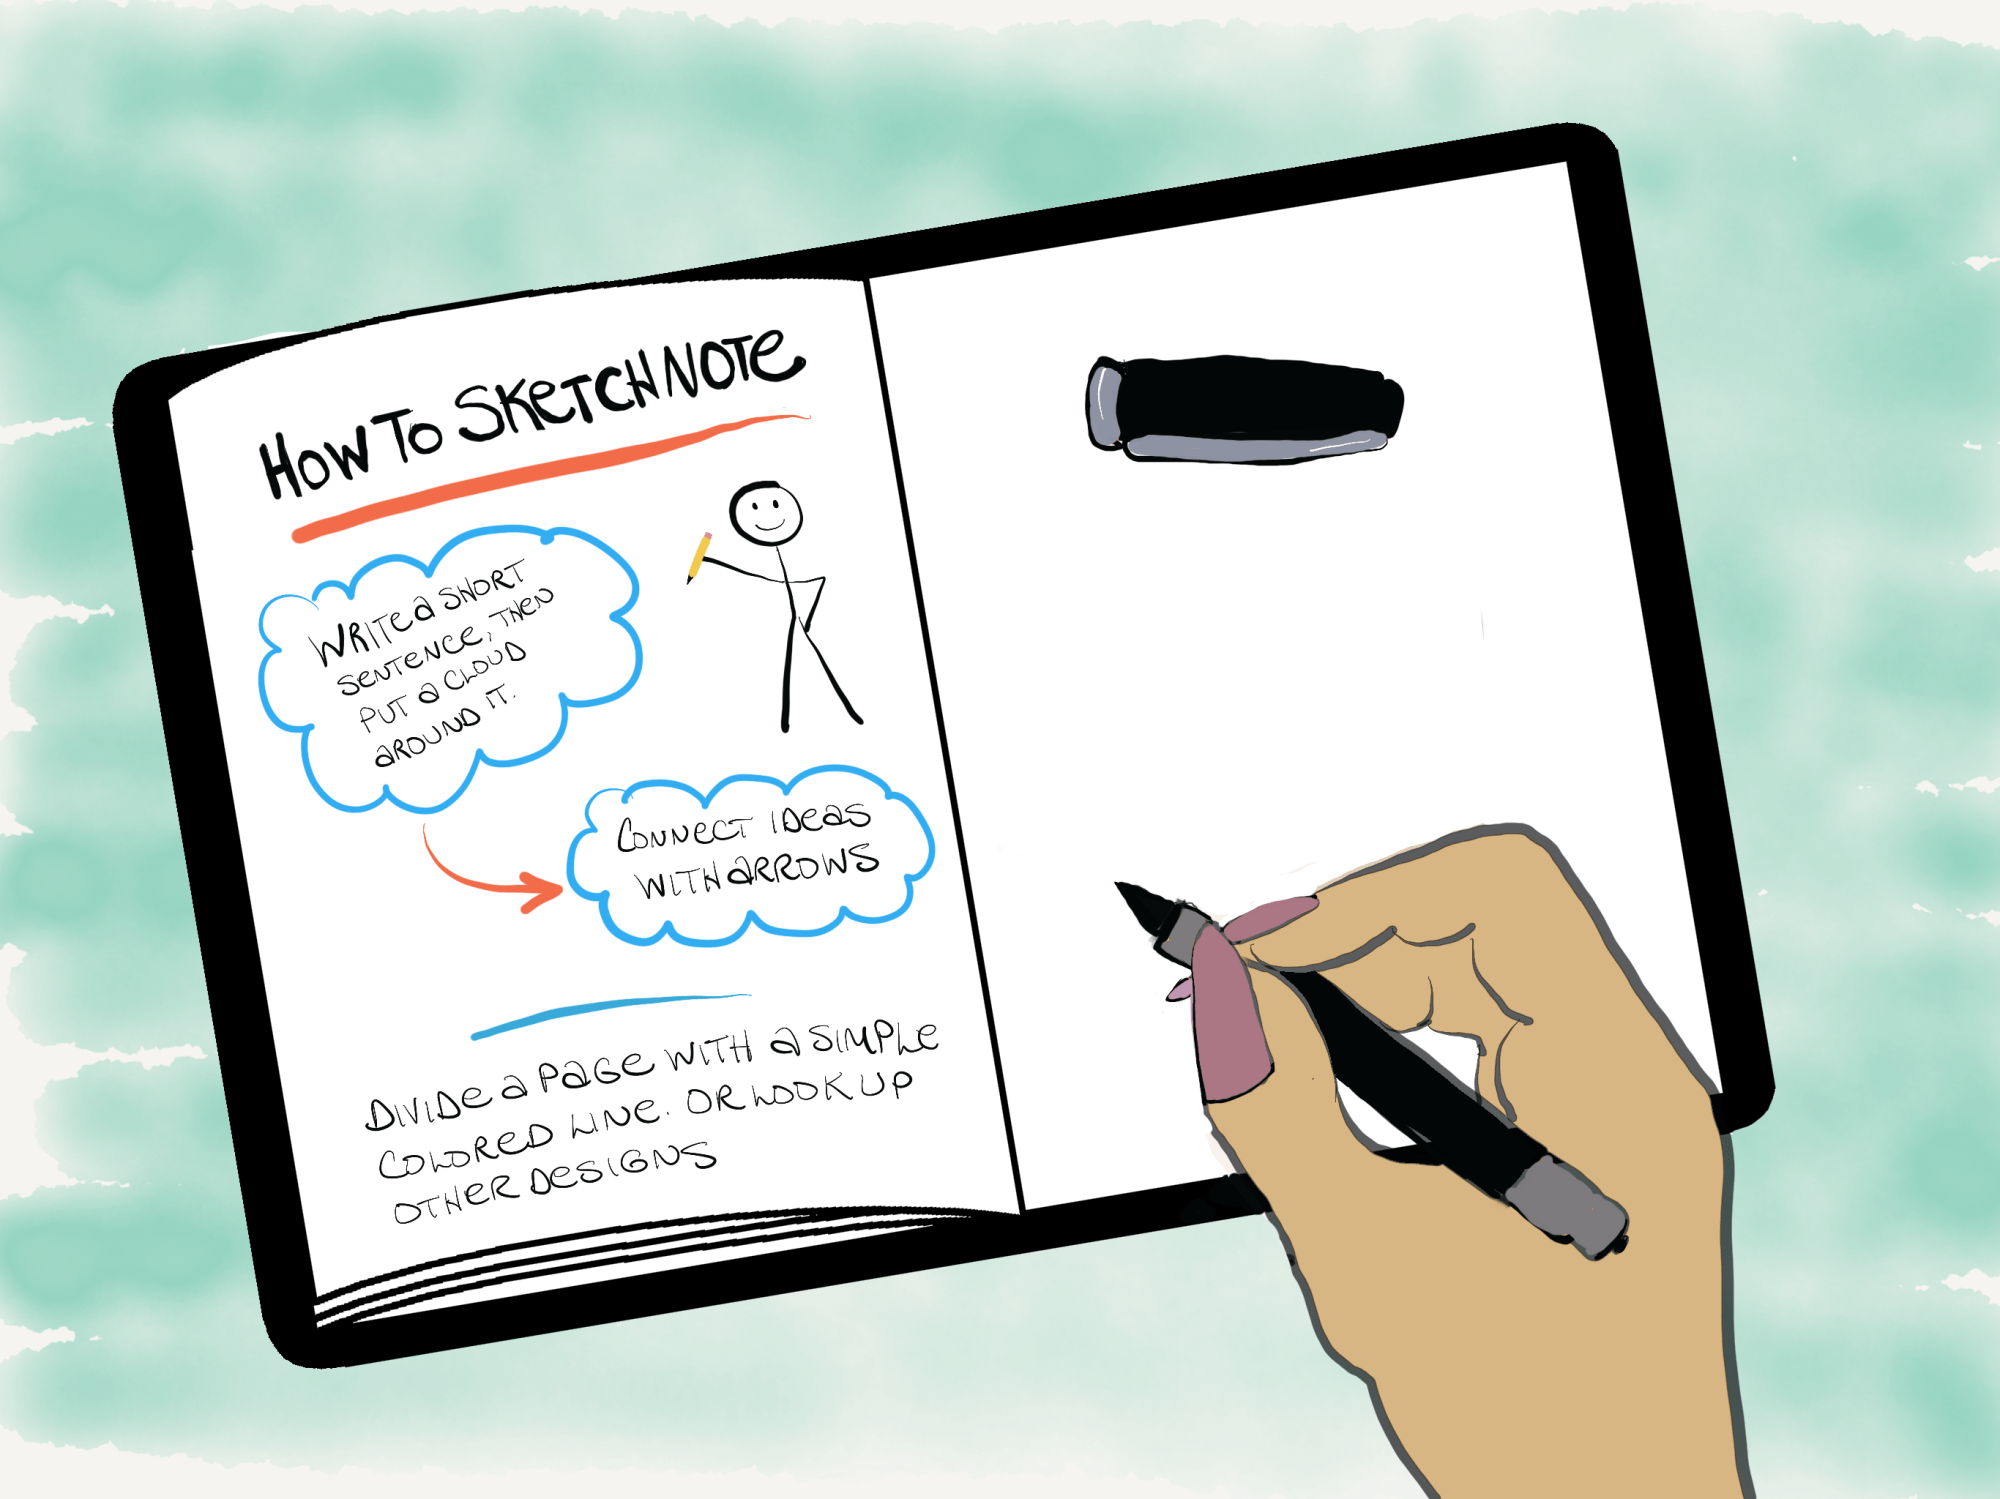 How to sketchnote even if you are not an artist